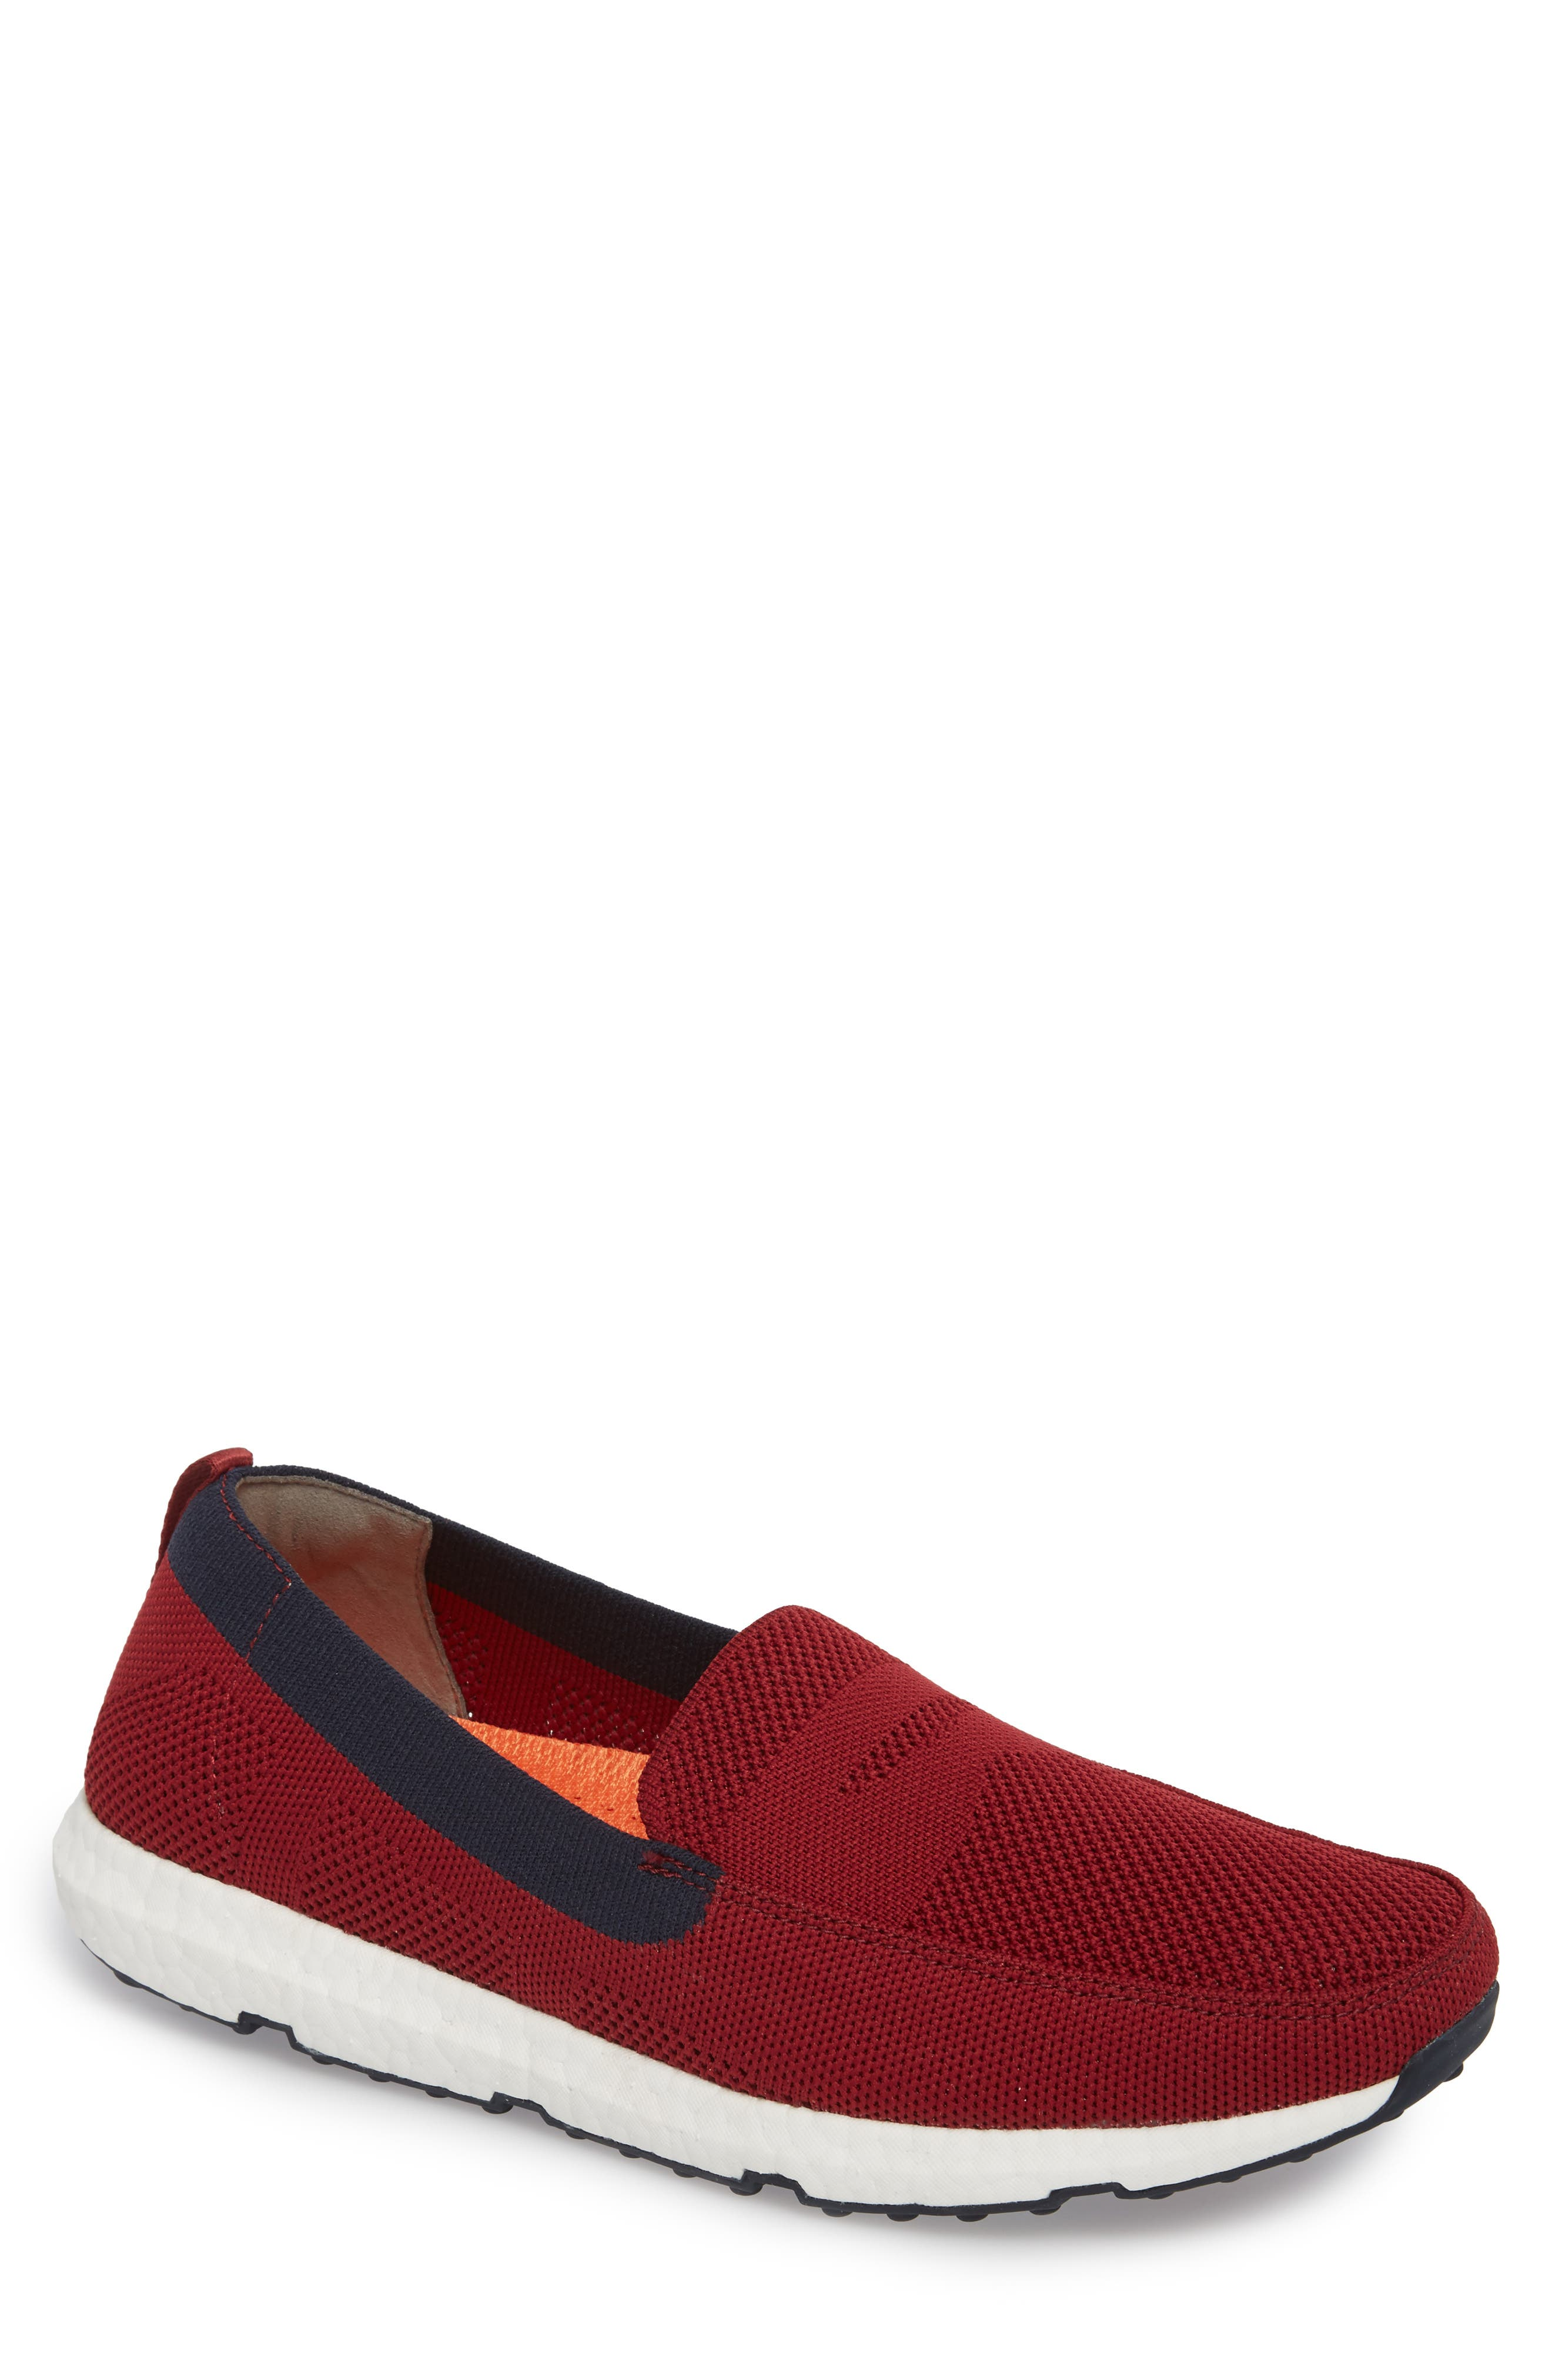 Breeze Leap Penny Loafer,                         Main,                         color, Deep Red/ Navy